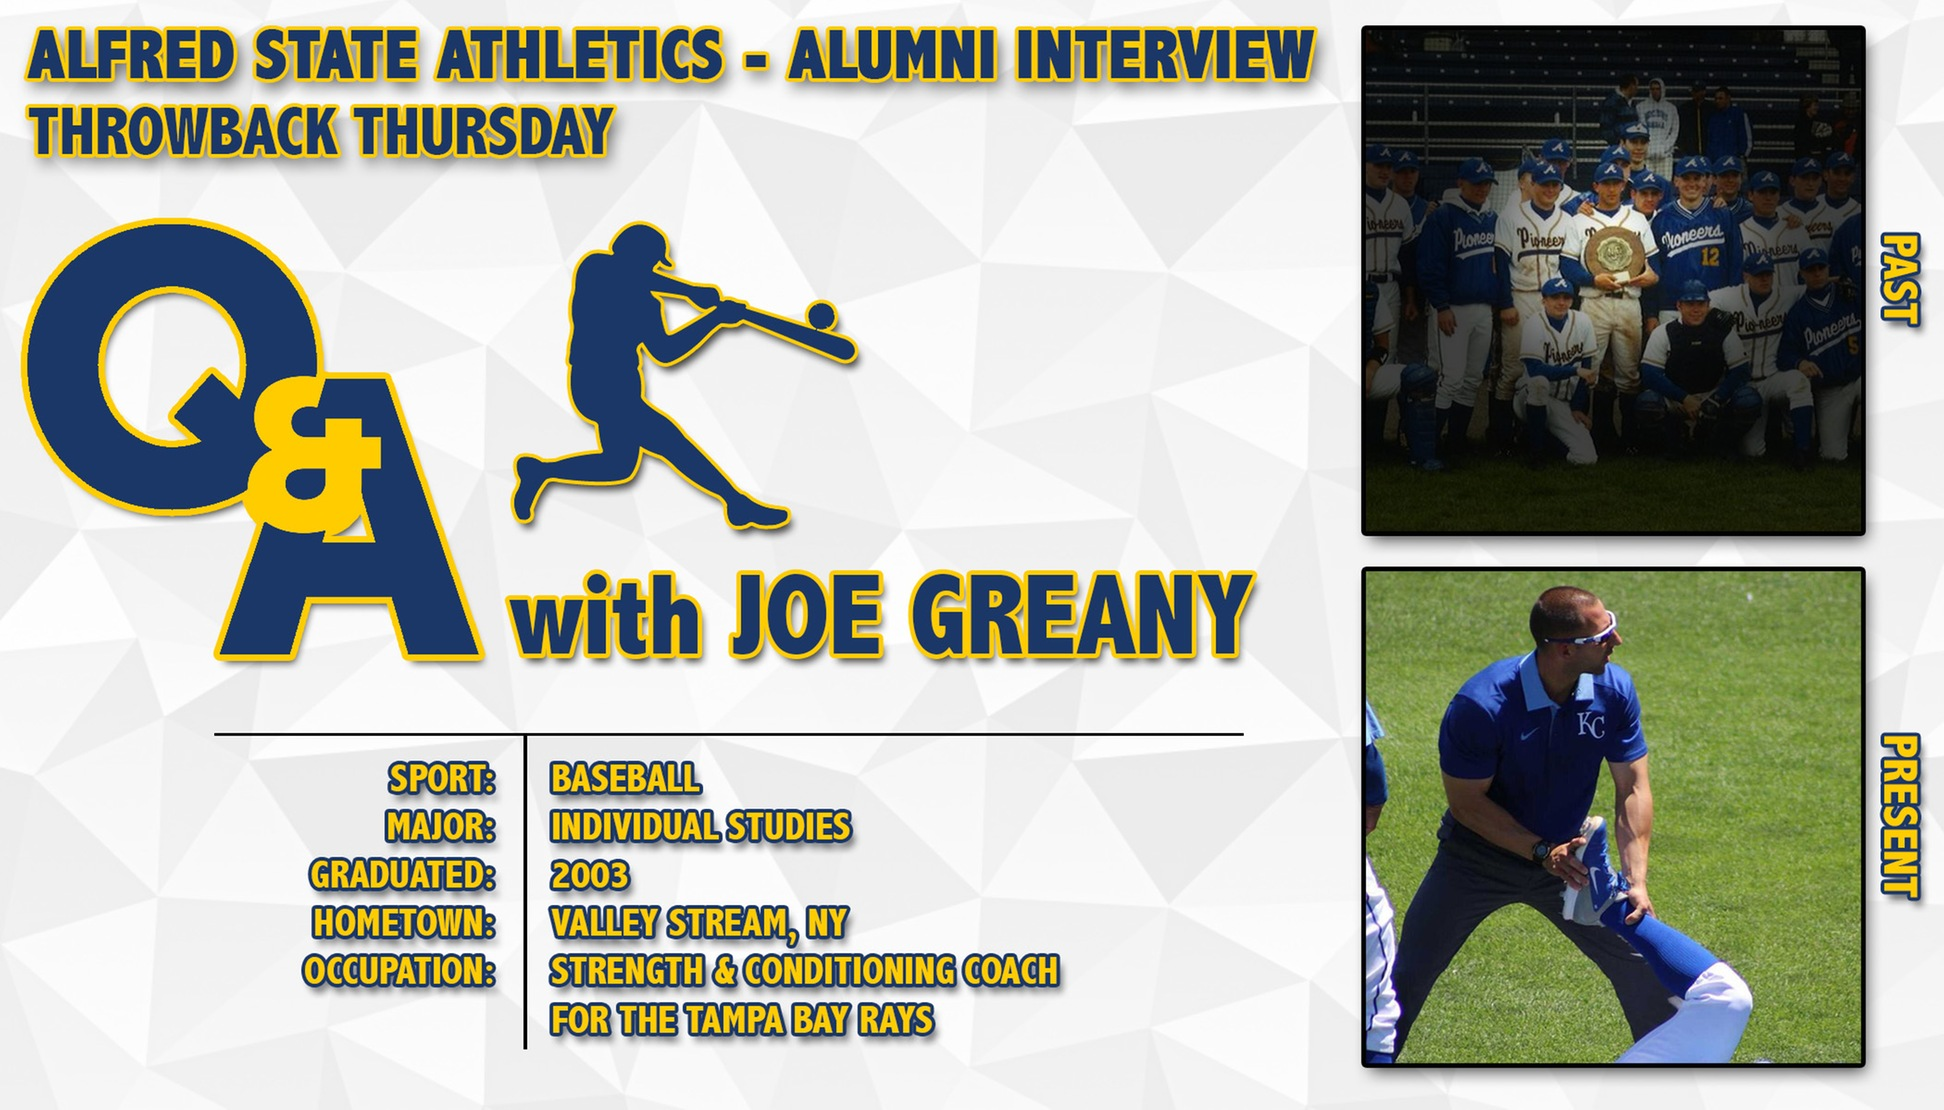 Q&A with Joe Greany